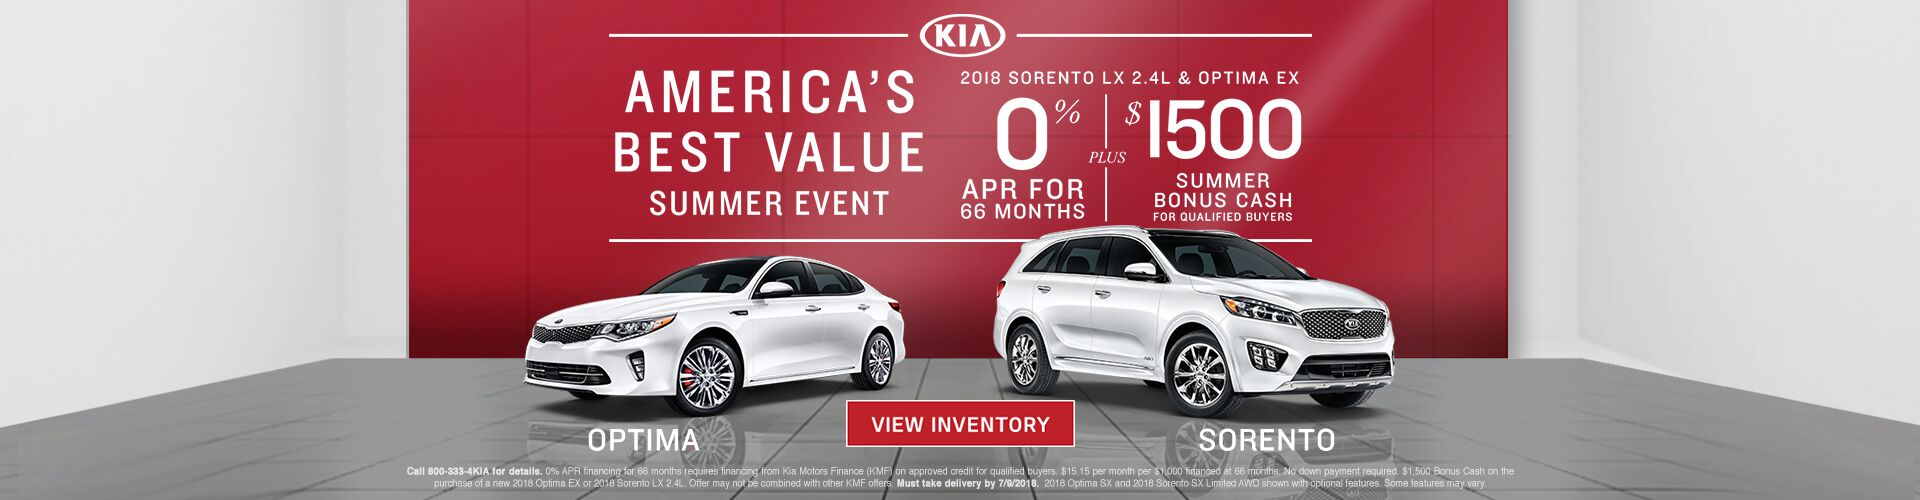 America's Best Value Summer Event at Ray Brandt Kia